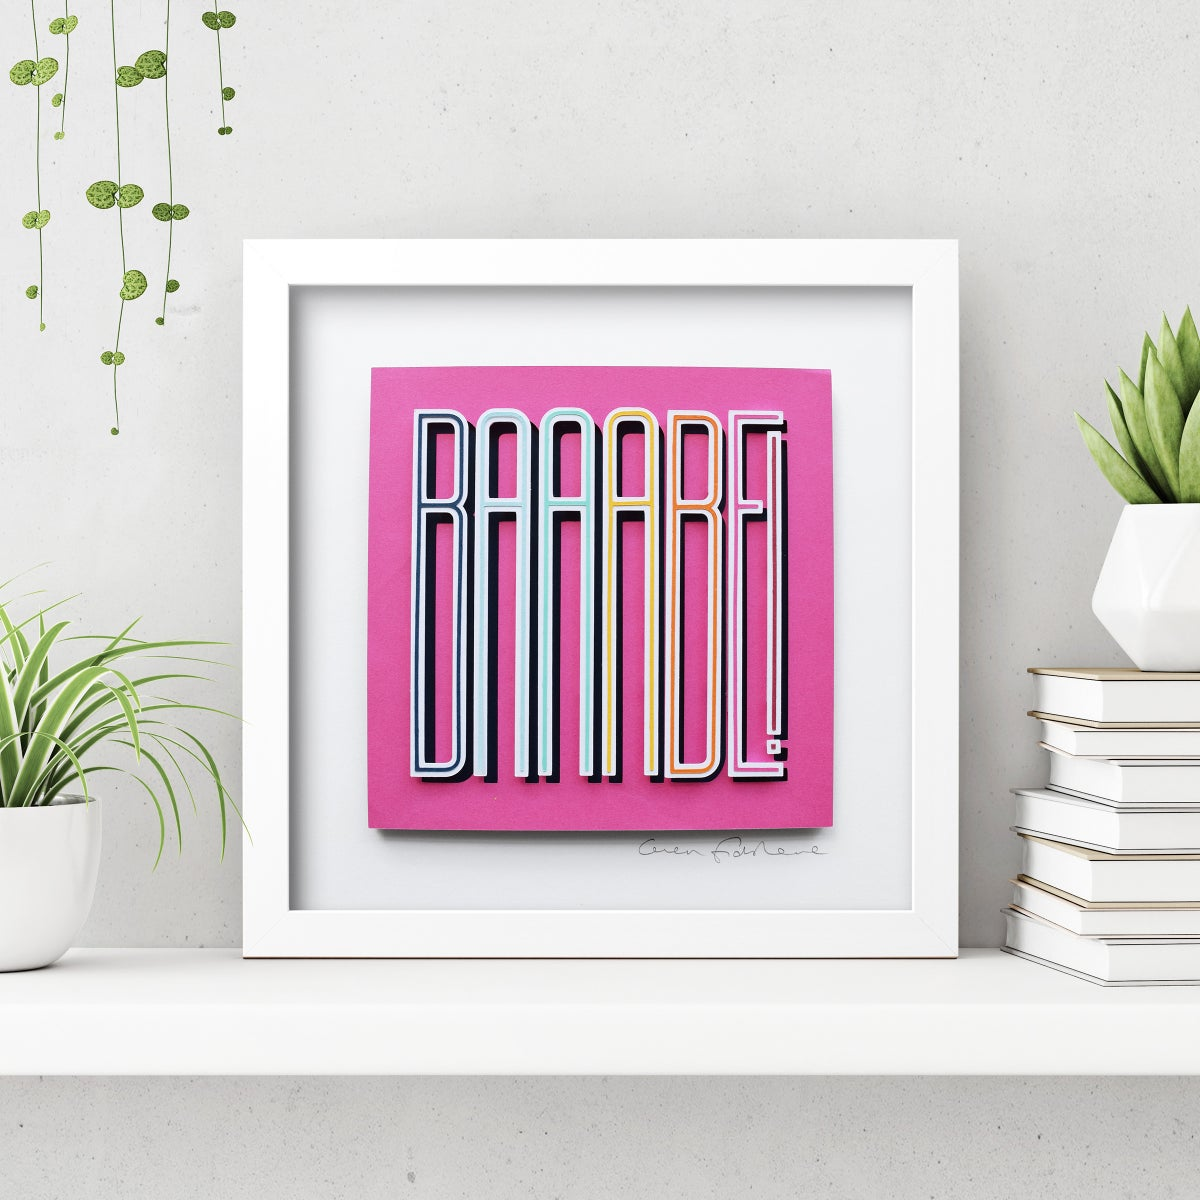 Image of BAAABE – Framed Original Paper Cut Artwork